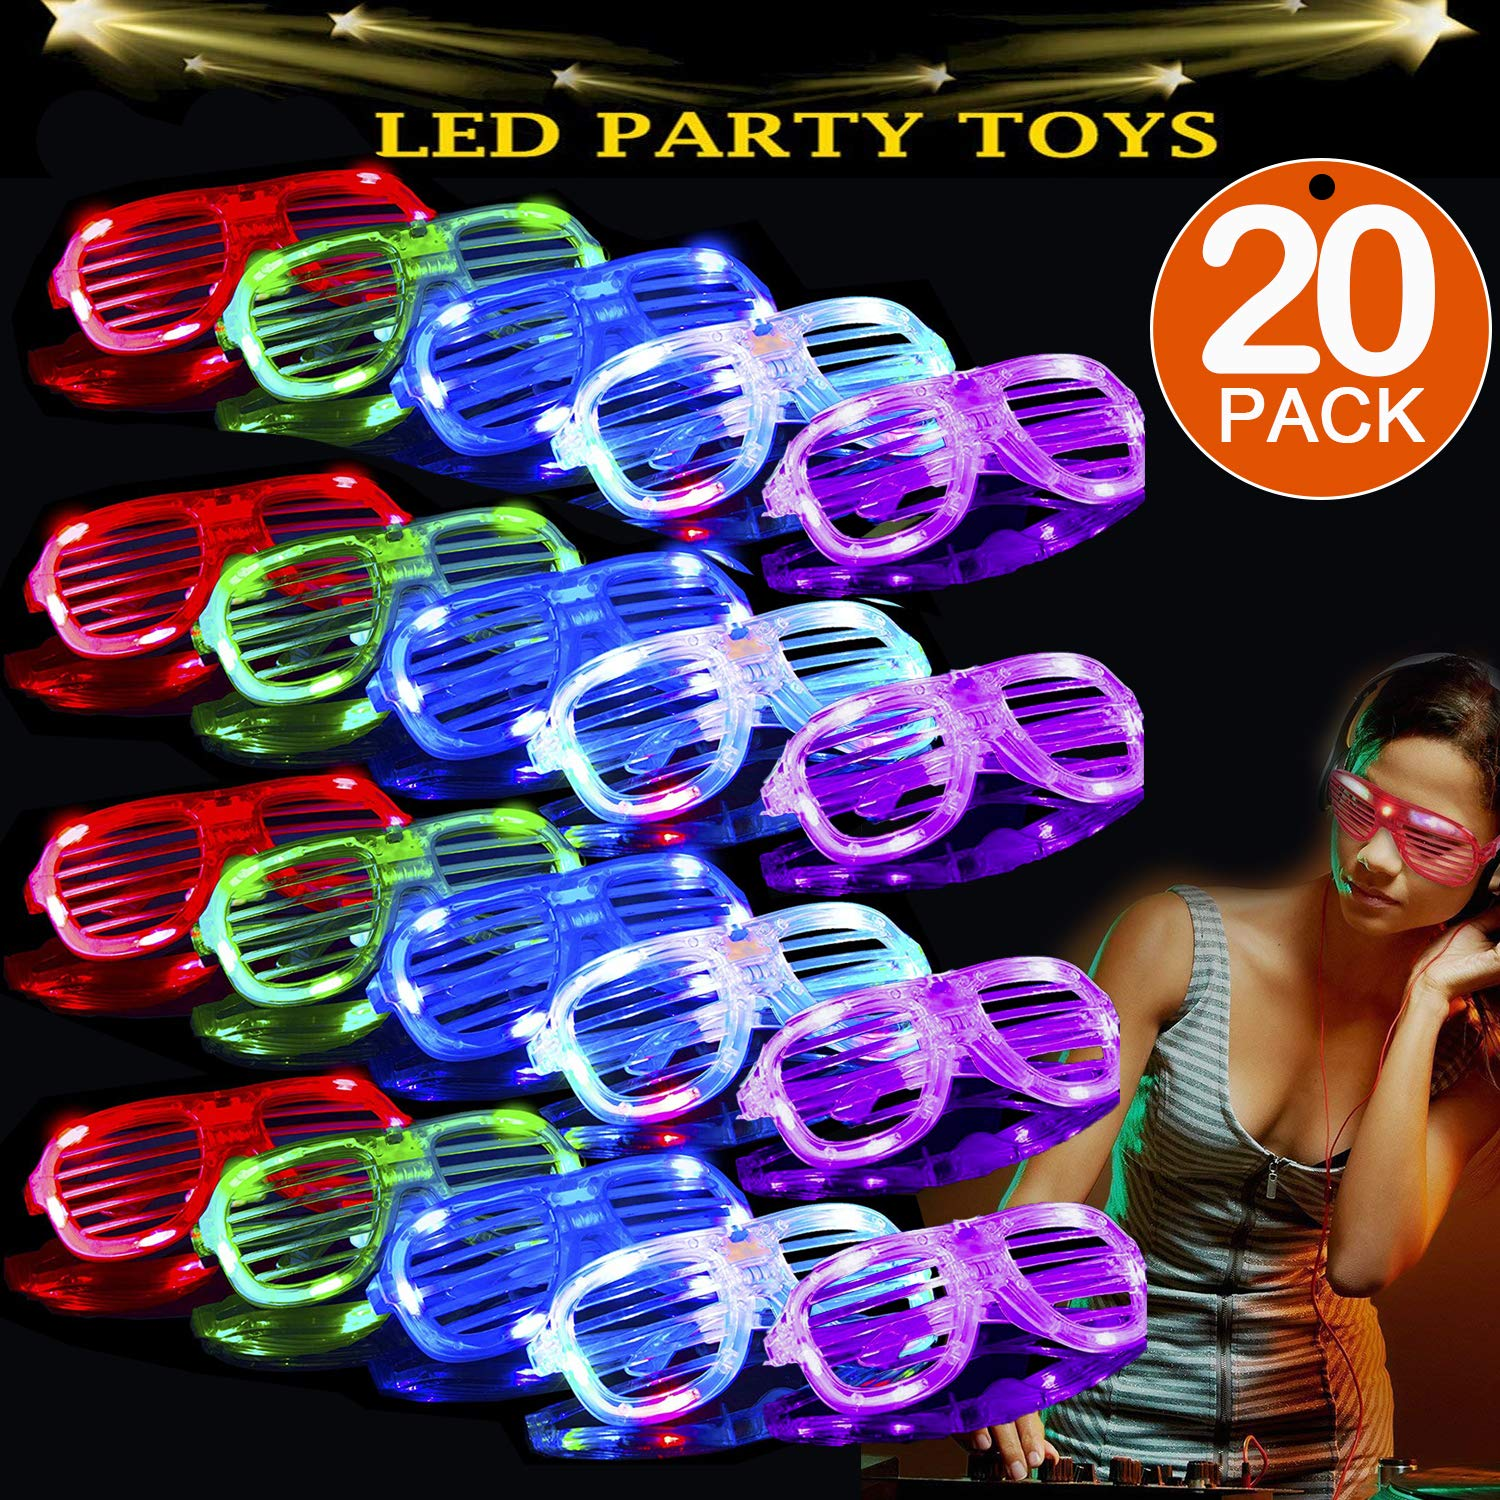 TURNMEON 20 Pack LED Glasses,5 Color Light Up Plastic Shutter Shades Glasses Shades Sunglasses for Adults Kids Glow in the Dark Party Favors Neon Party Supplies Independence Day Glow Toy by TURNMEON (Image #1)